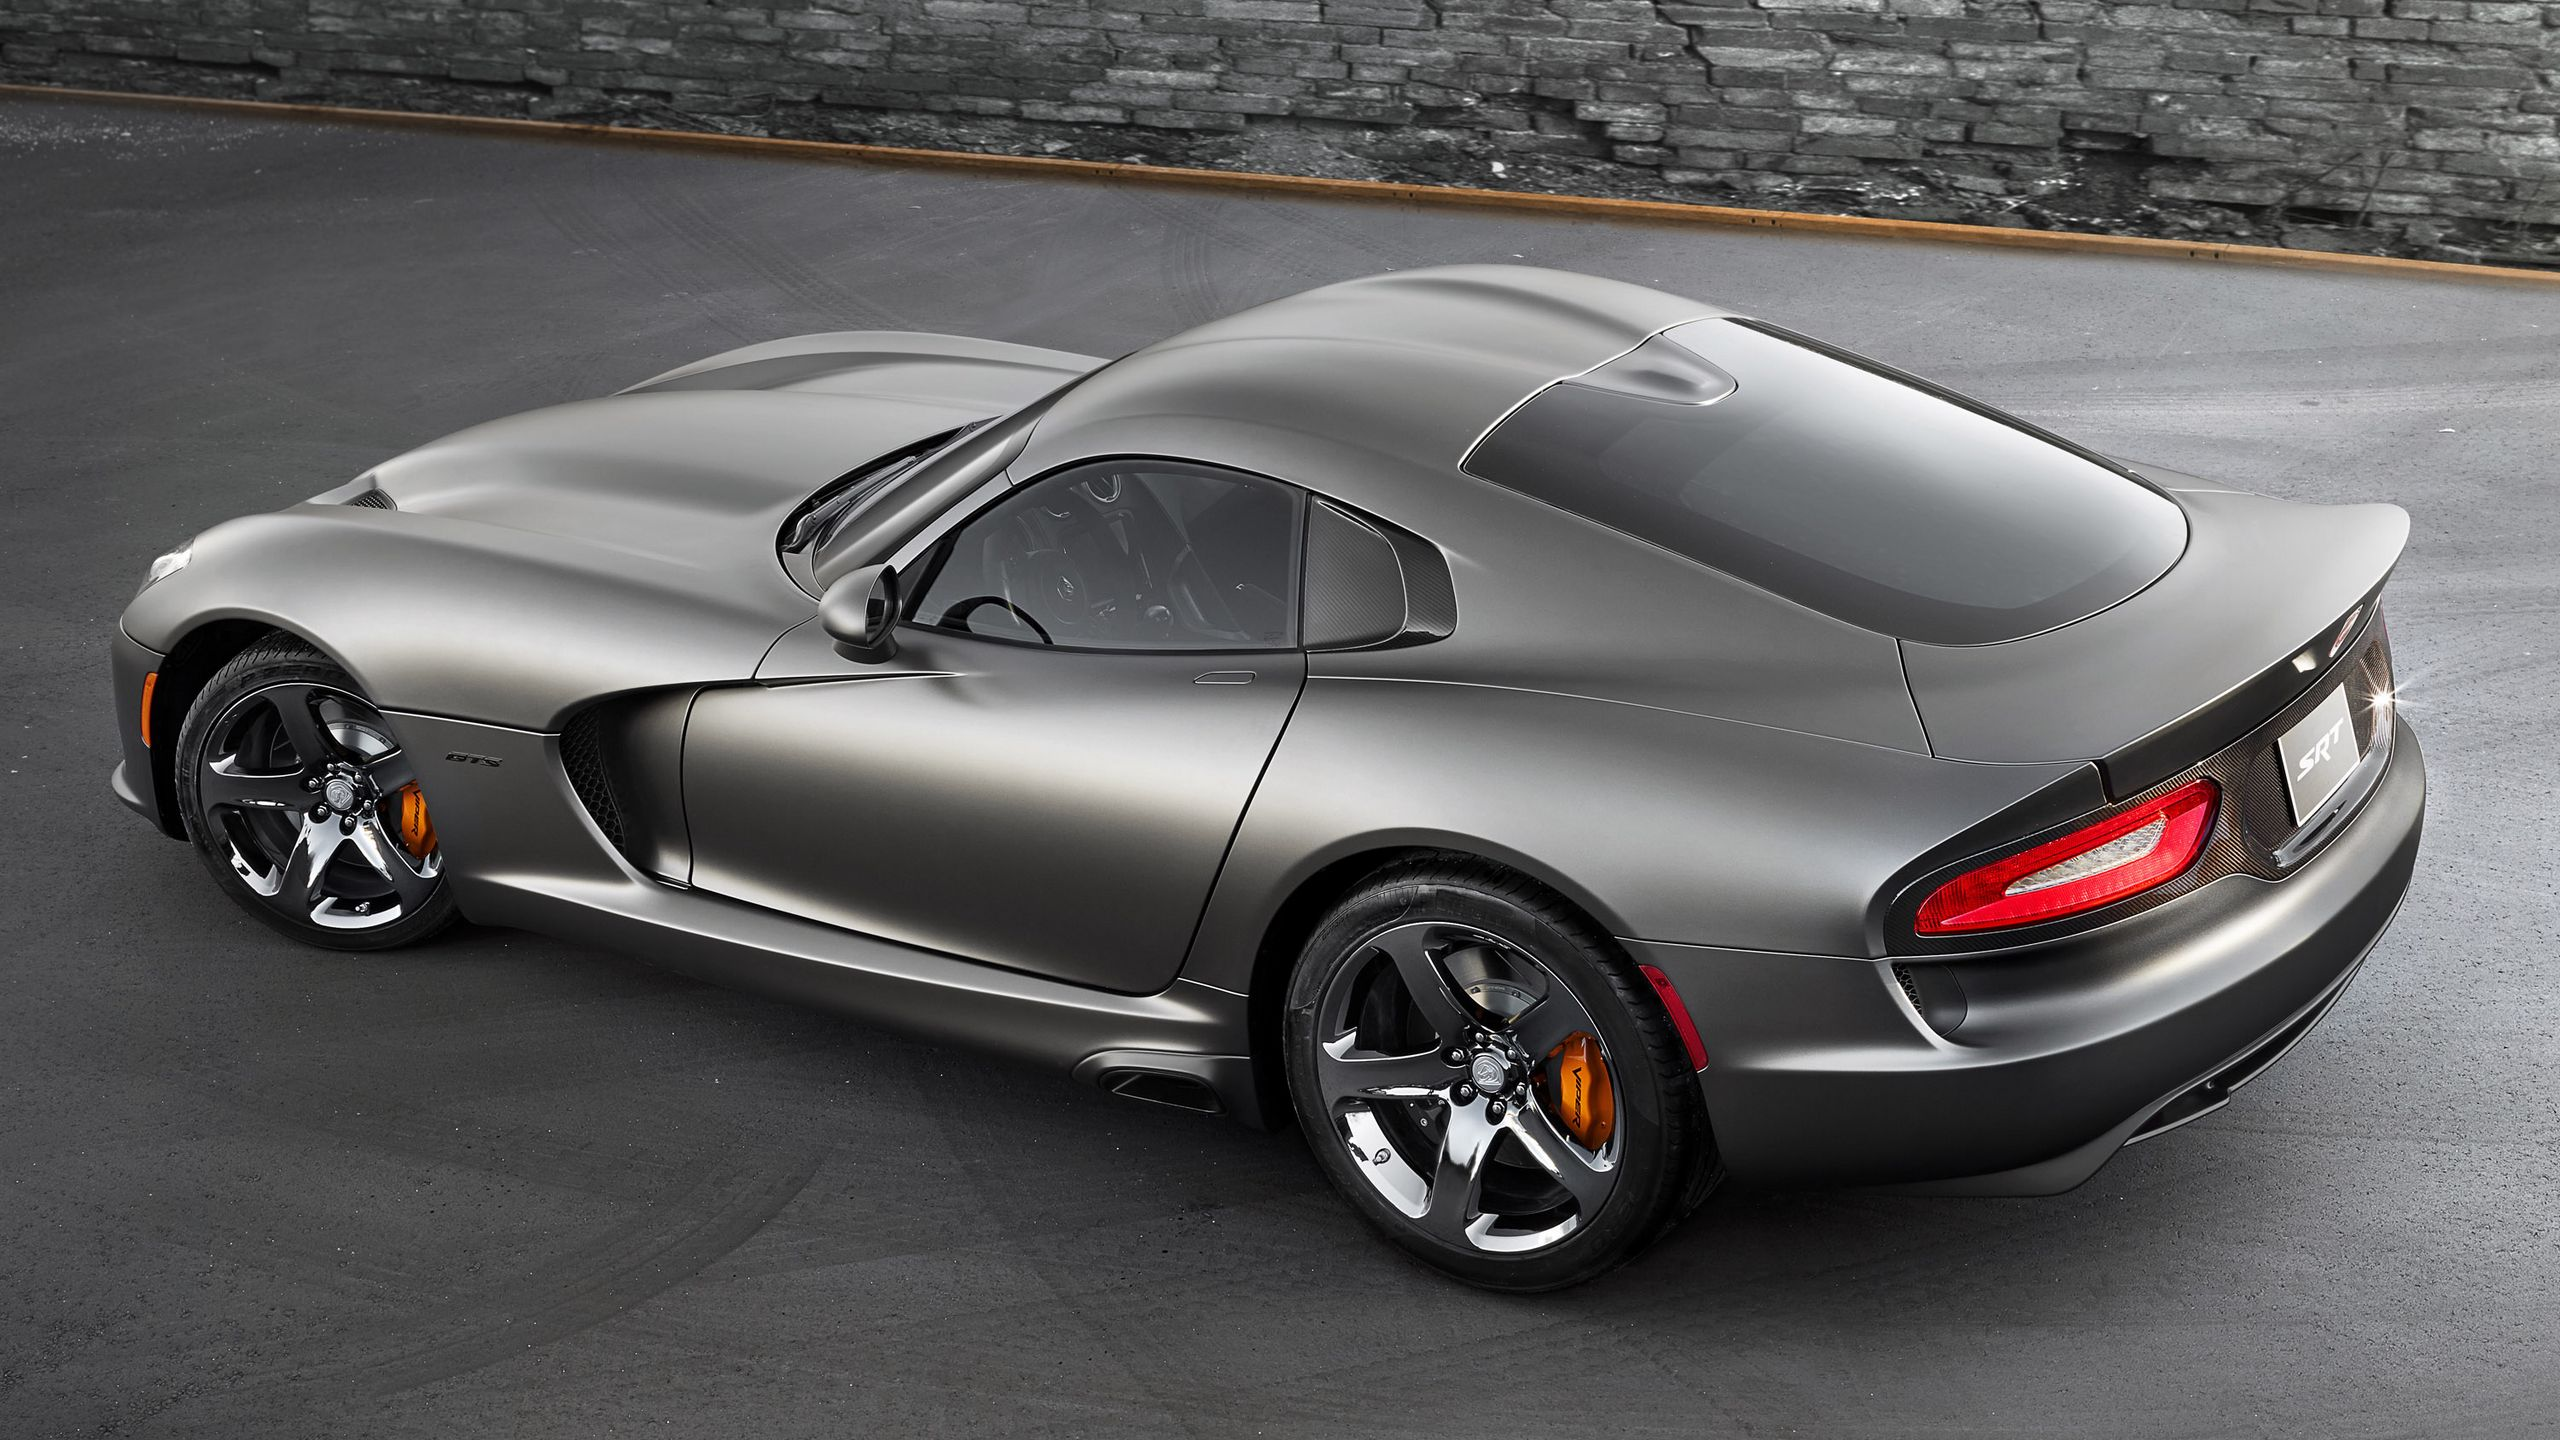 2560x1440 Wallpaper dodge viper, srt, gts, anodized, carbon, special, edition, package, 2014